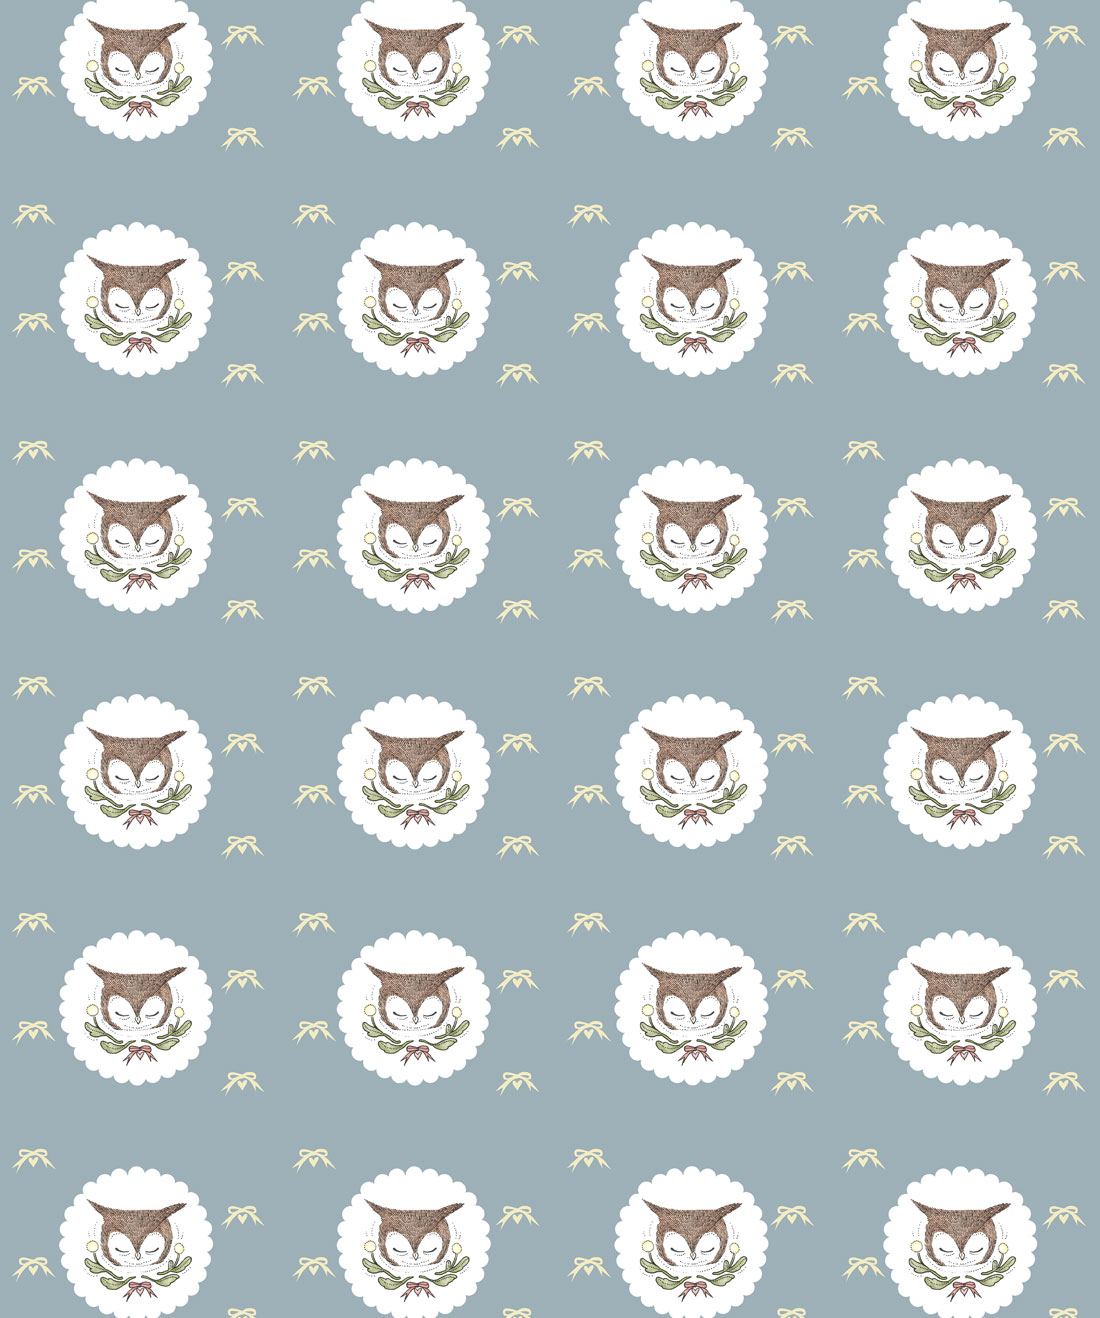 Owl Ribbons Wallpaper